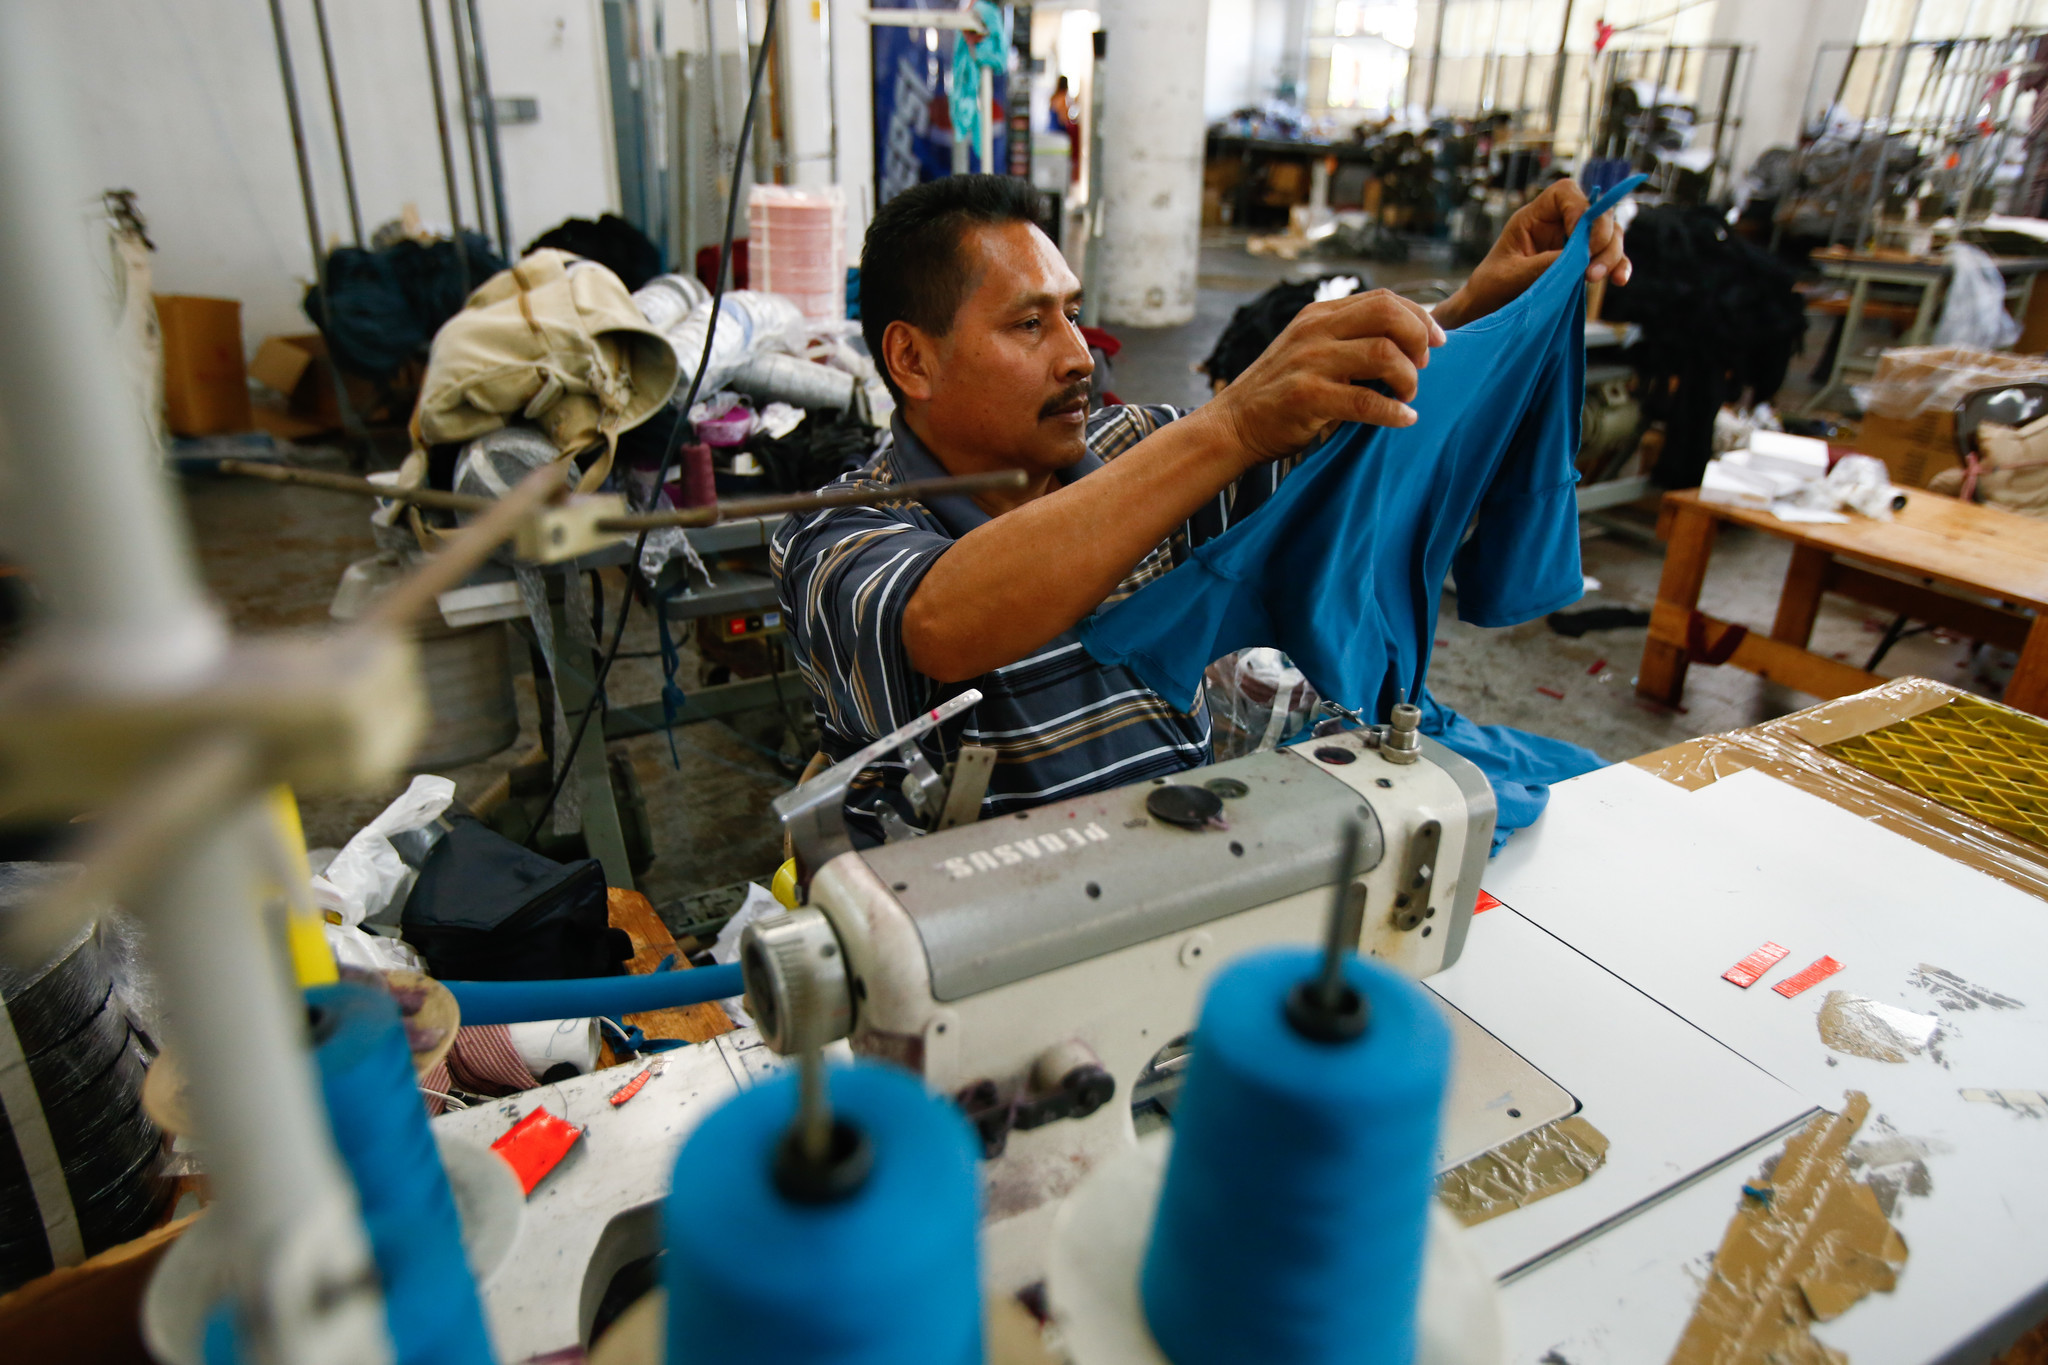 Pablo Mendez, 48, says he earns around $7 an hour as a sewing machine operator and works 11-hour days. (Claire Hannah Collins / Los Angeles Times)